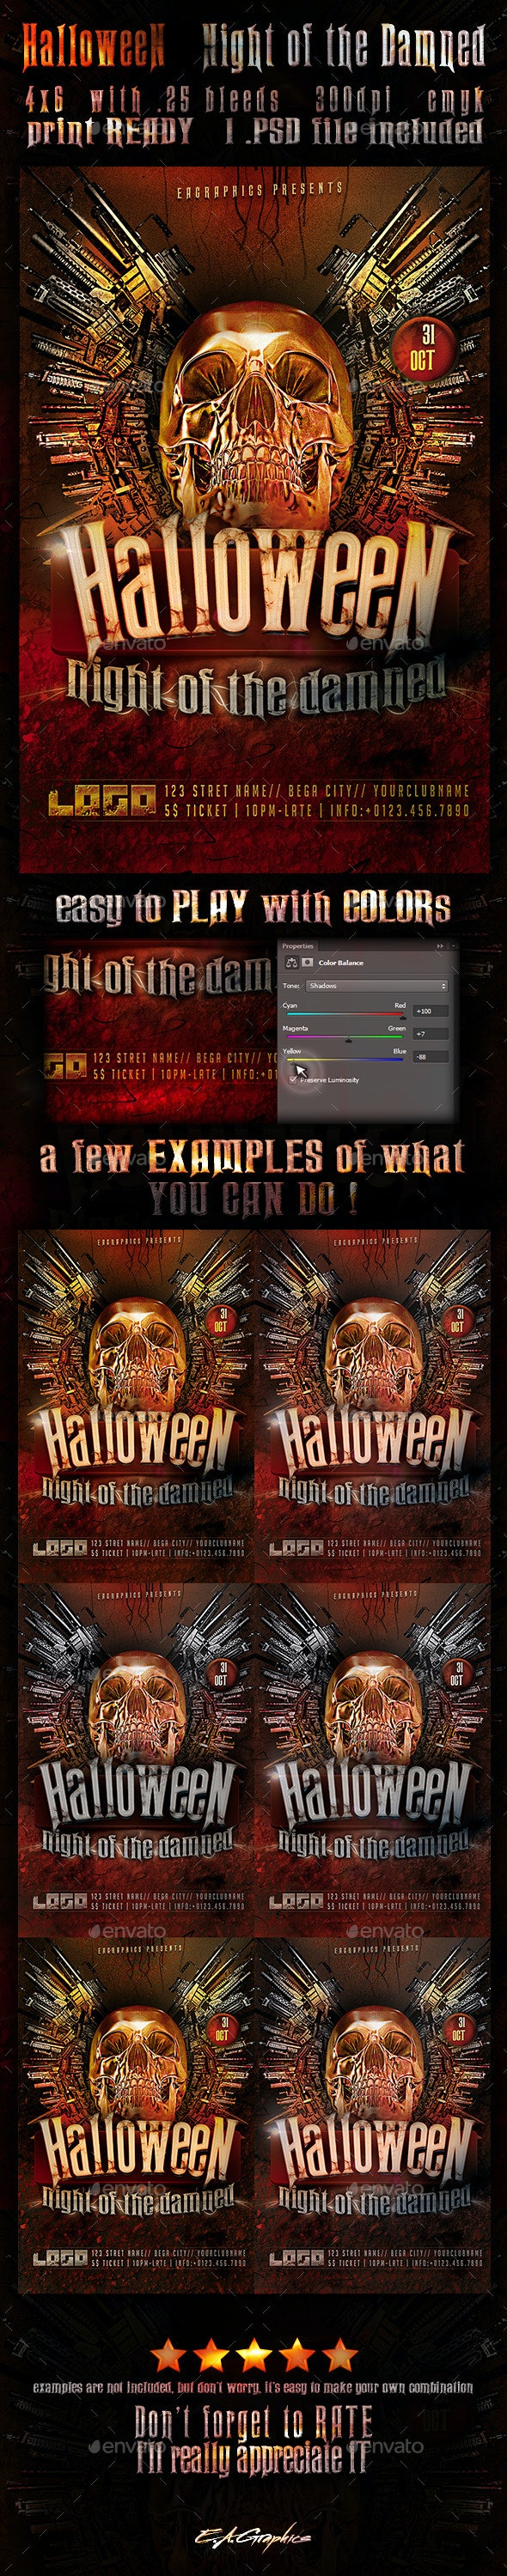 HalloweeN - Night Of The Damned - Holidays Events